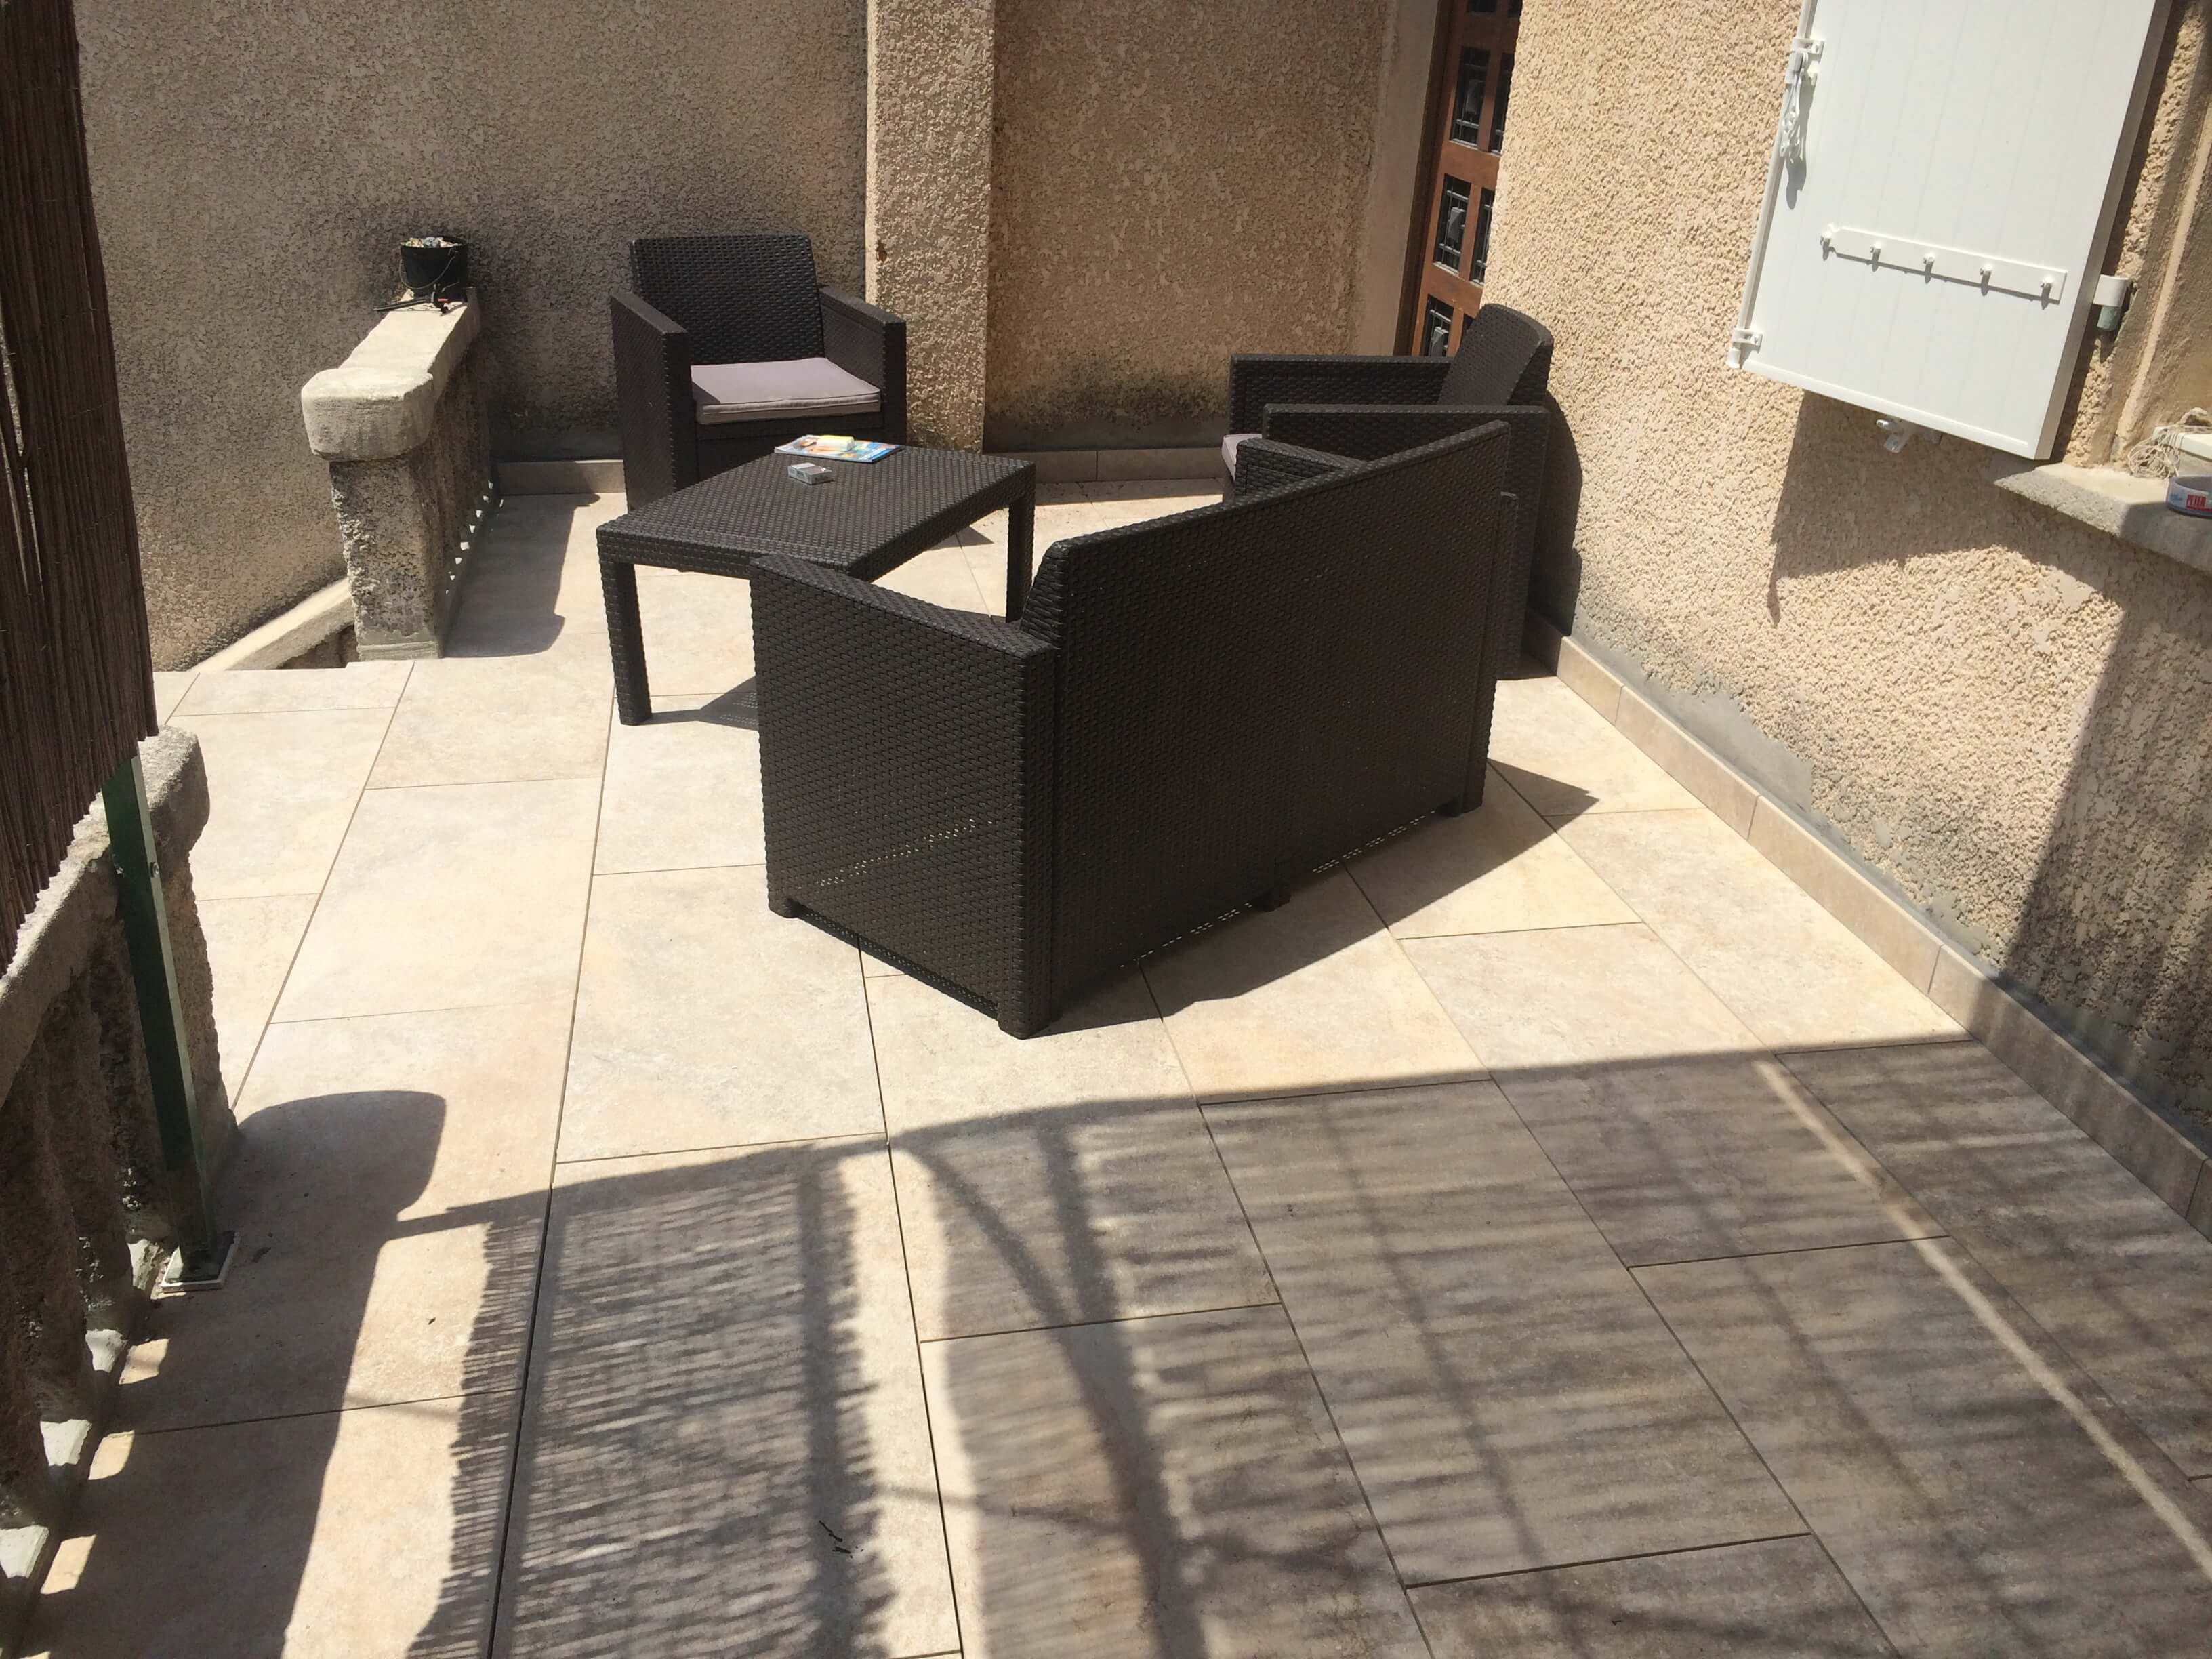 r fection et tanch it d 39 une terrasse marseille sud ravalement. Black Bedroom Furniture Sets. Home Design Ideas